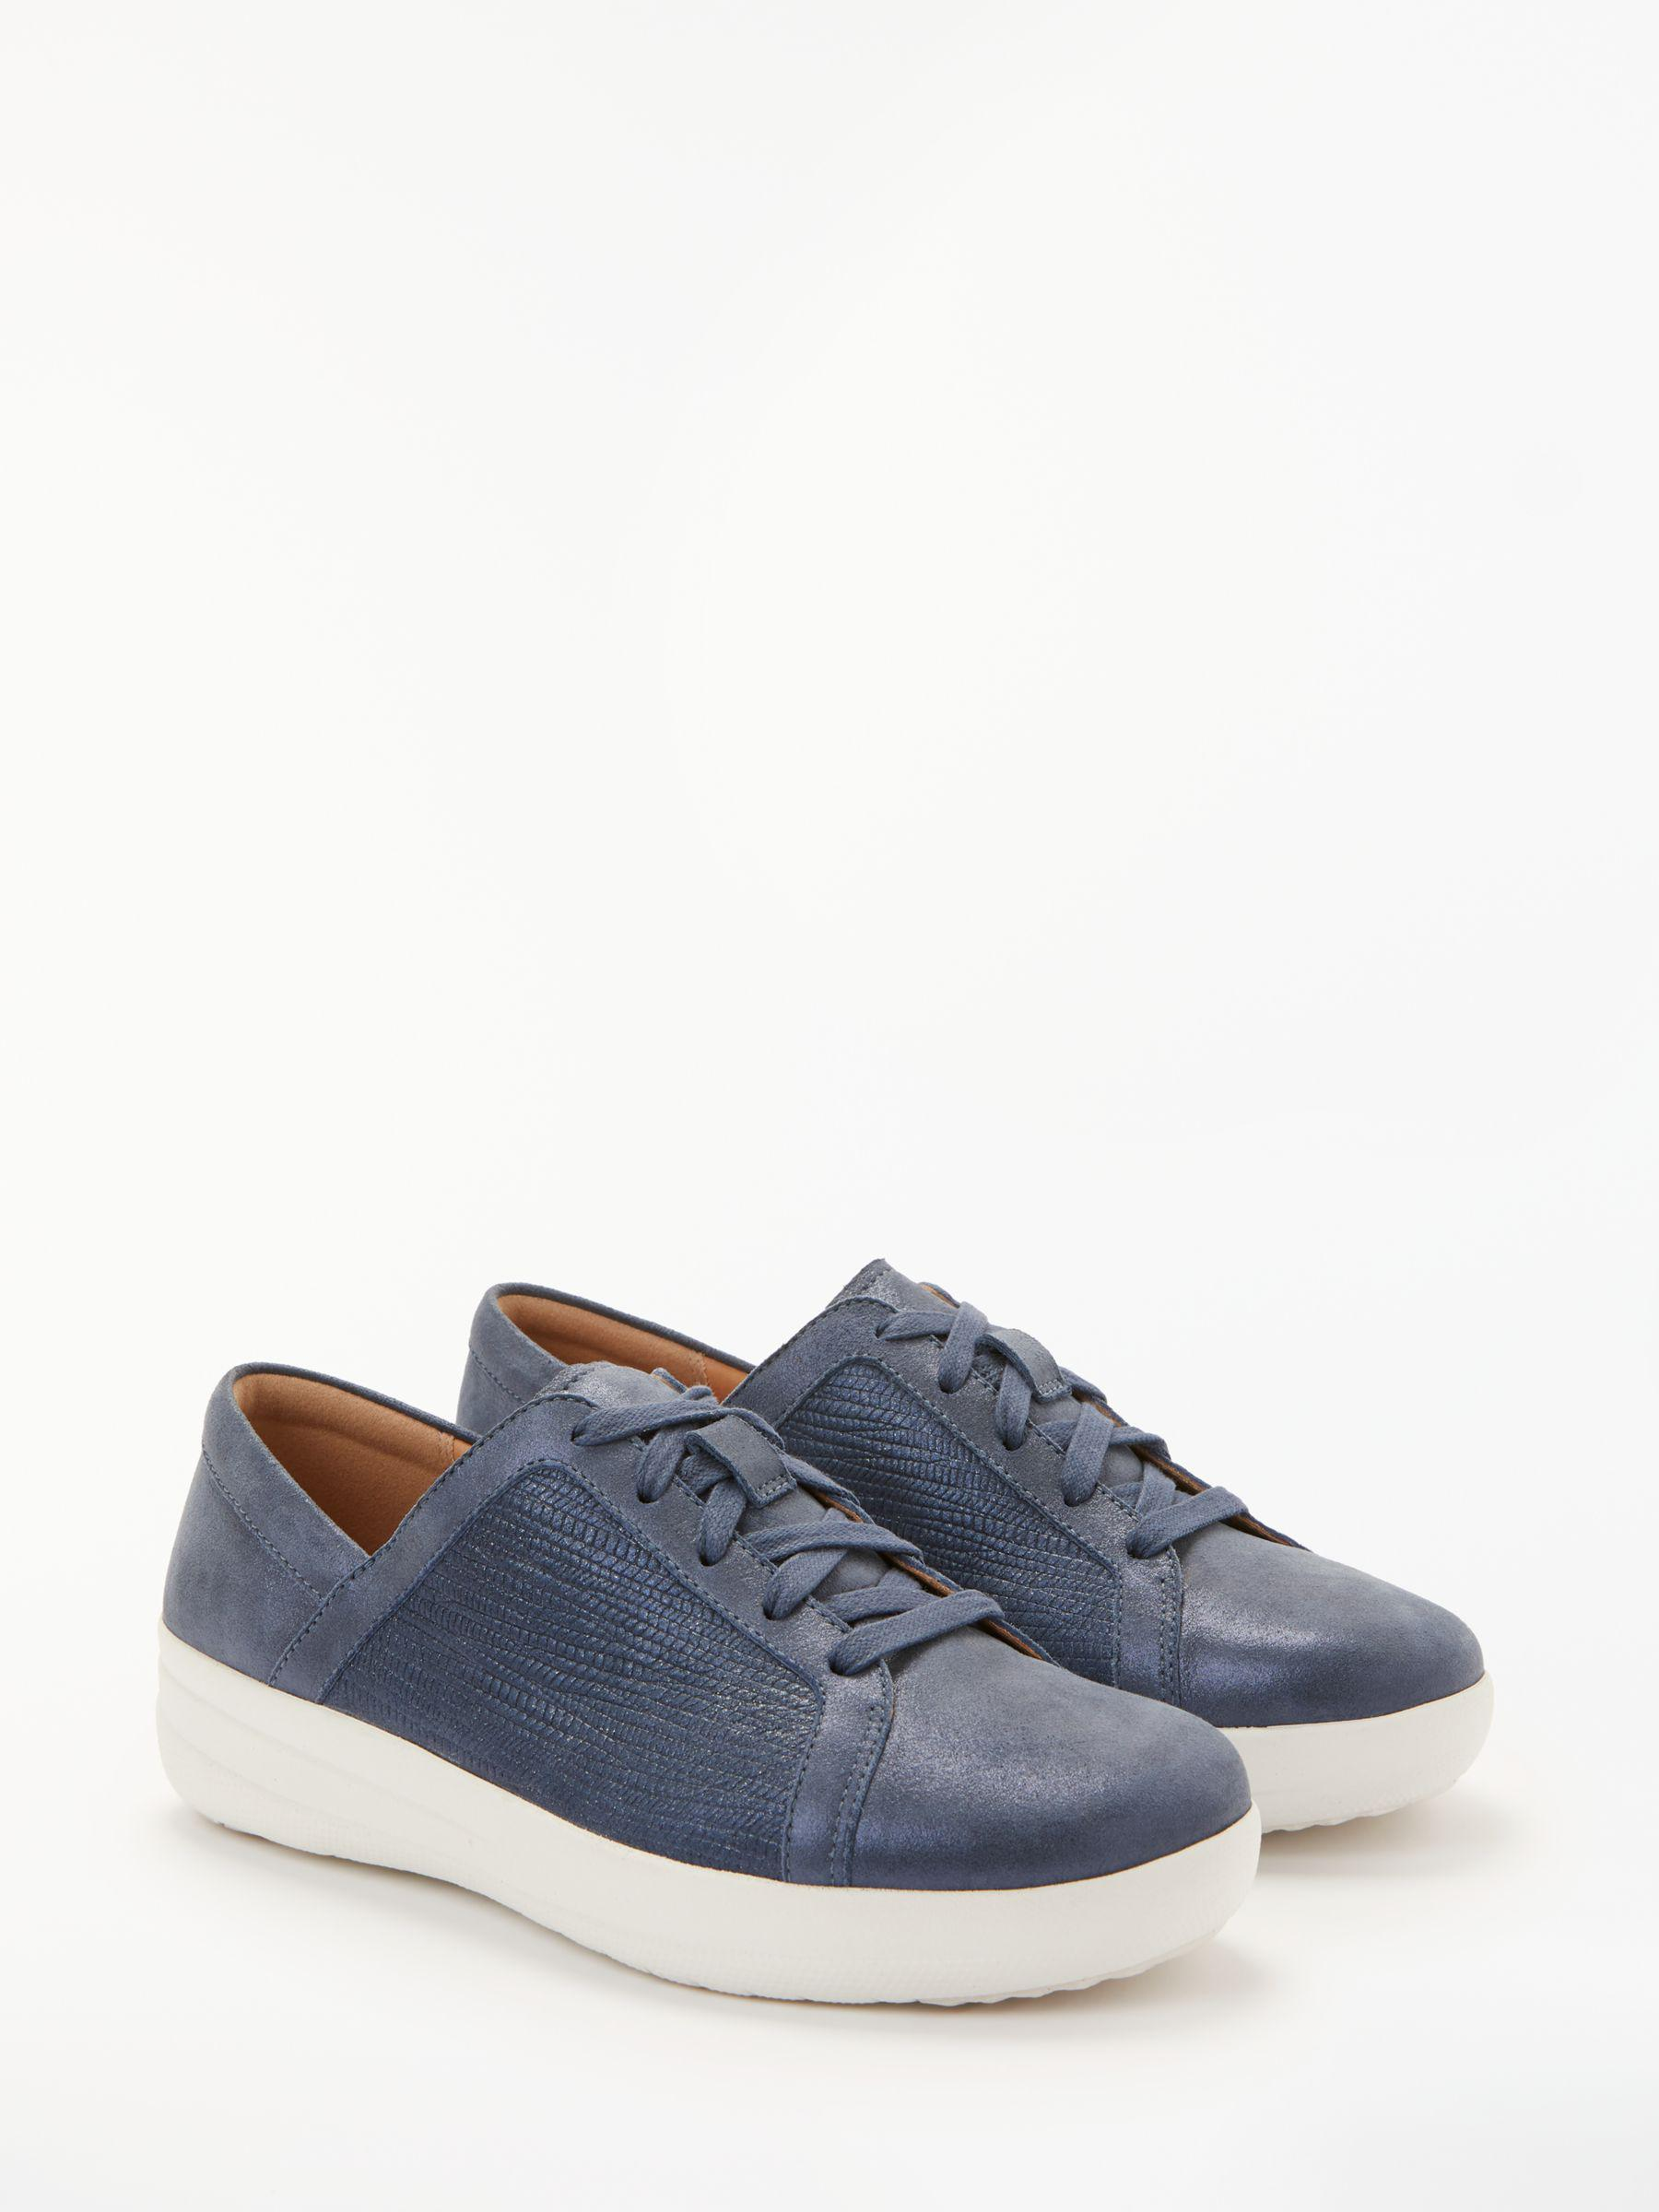 be0a489fb2b0 Fitflop F-sporty Textured Metallic Lace Up Trainers in Blue - Lyst